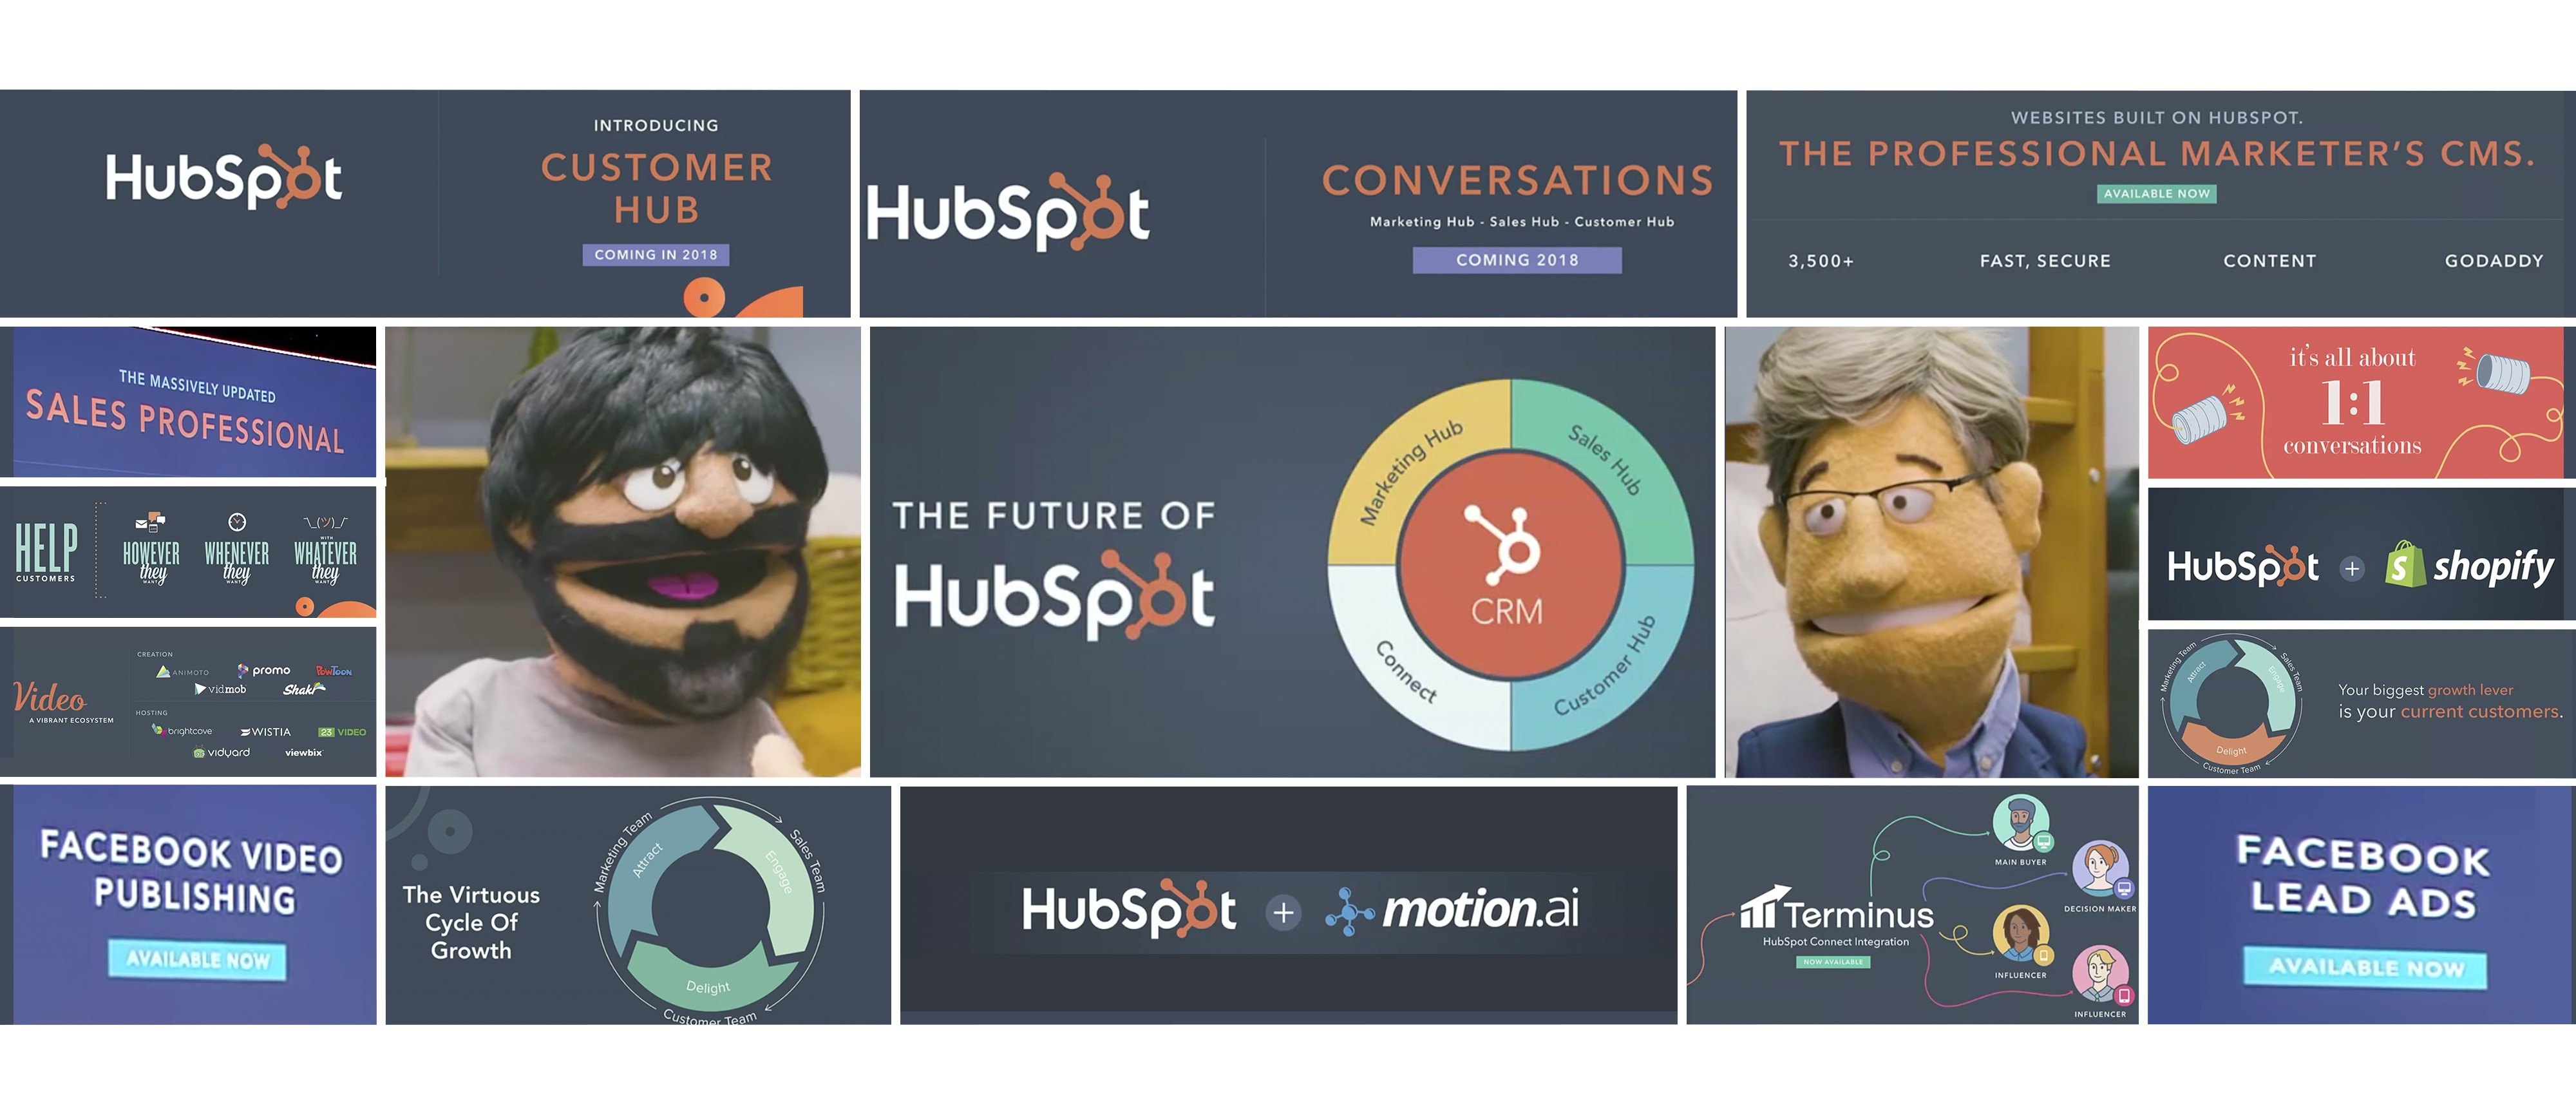 HubSpot Product Updates from the #INBOUND17 Conference - Header Image